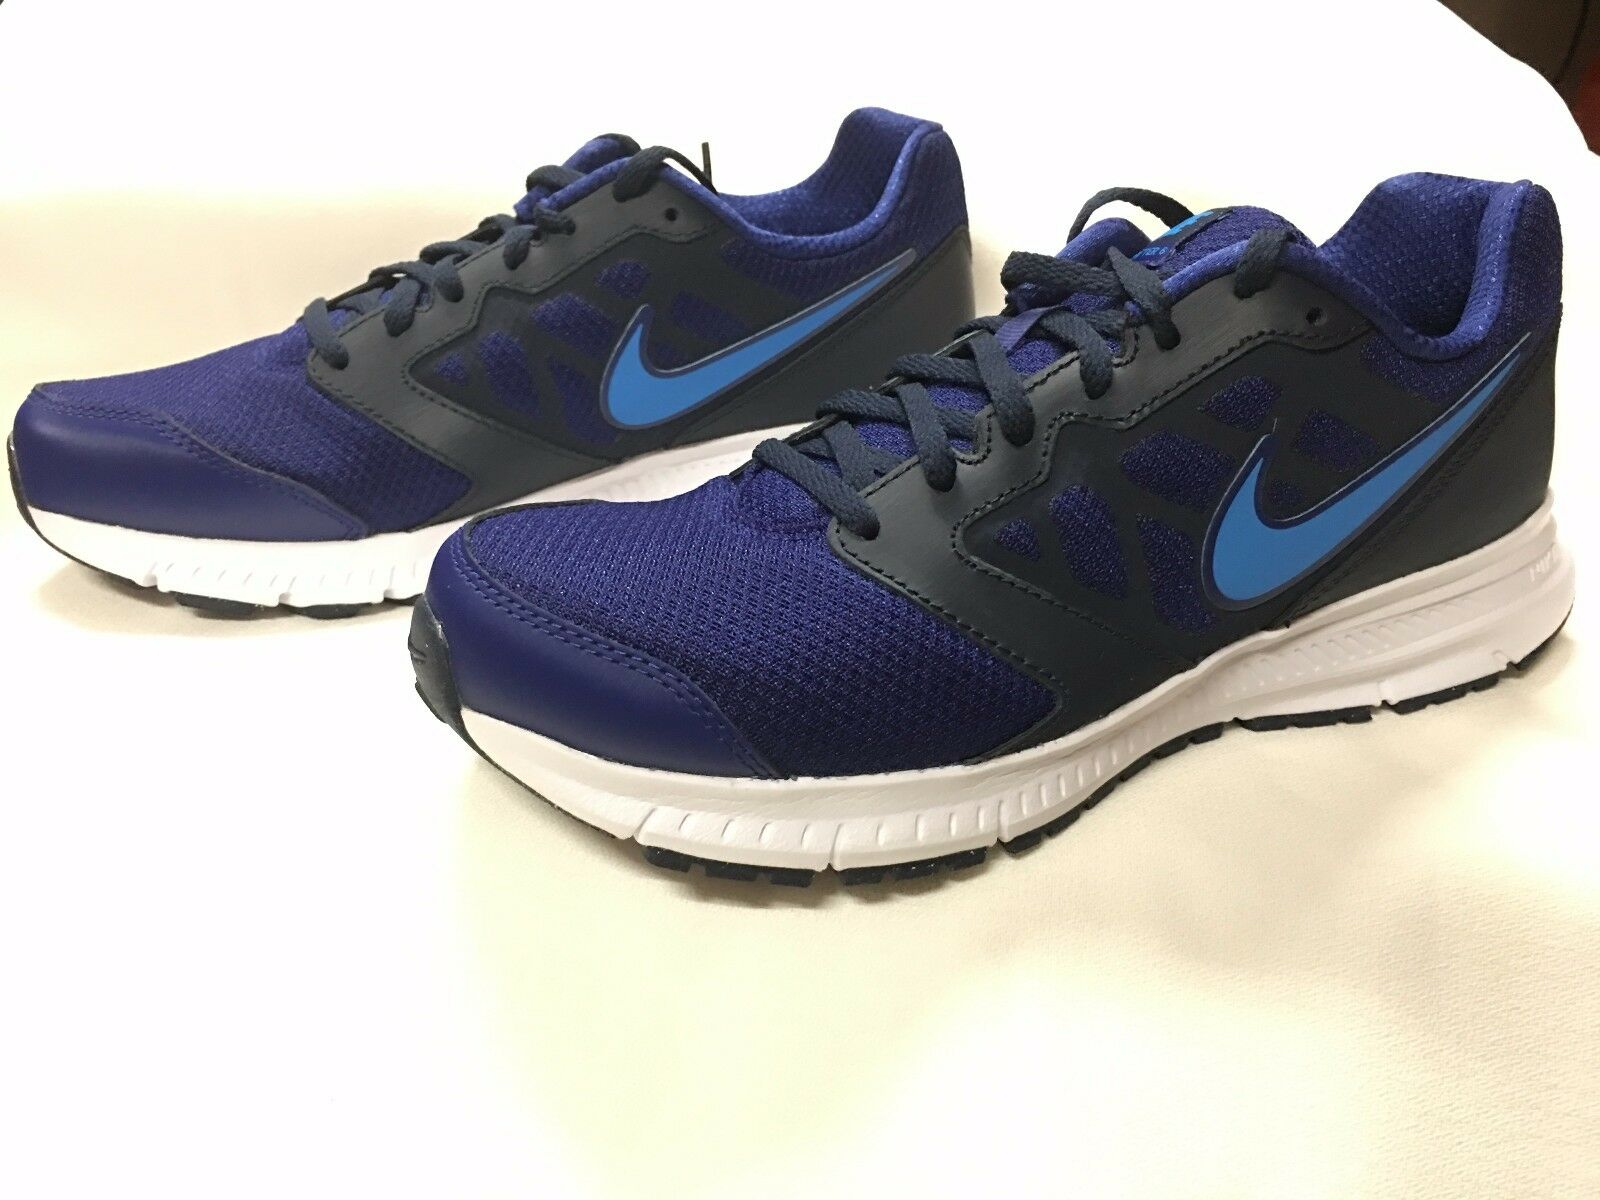 NEW 6  Men Nike Downshifter 6 NEW Running Athletic Shoes Sneaker size 6-13 684652 417 d38d56